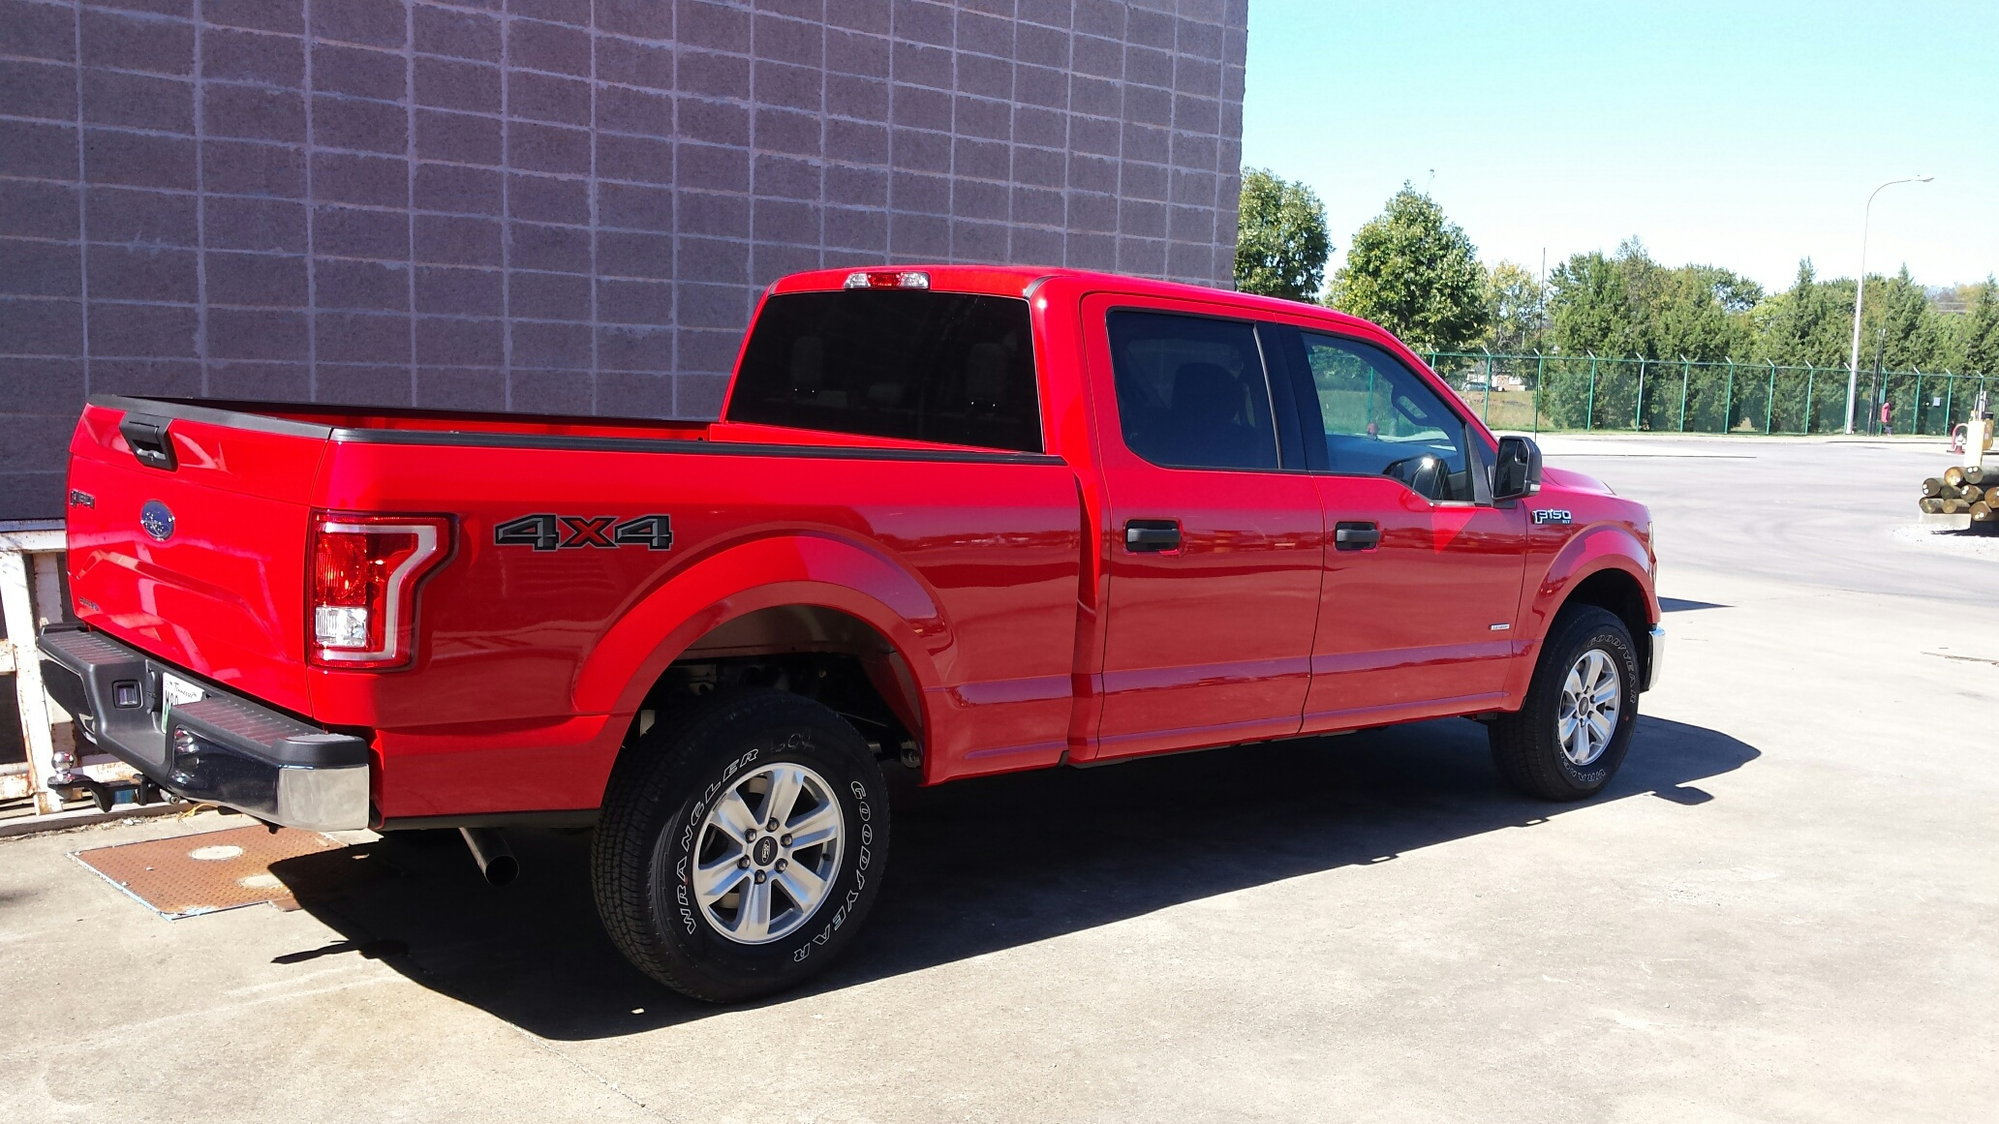 New 2015 Coasting Vibration/ Over Spray Pics - Ford F150